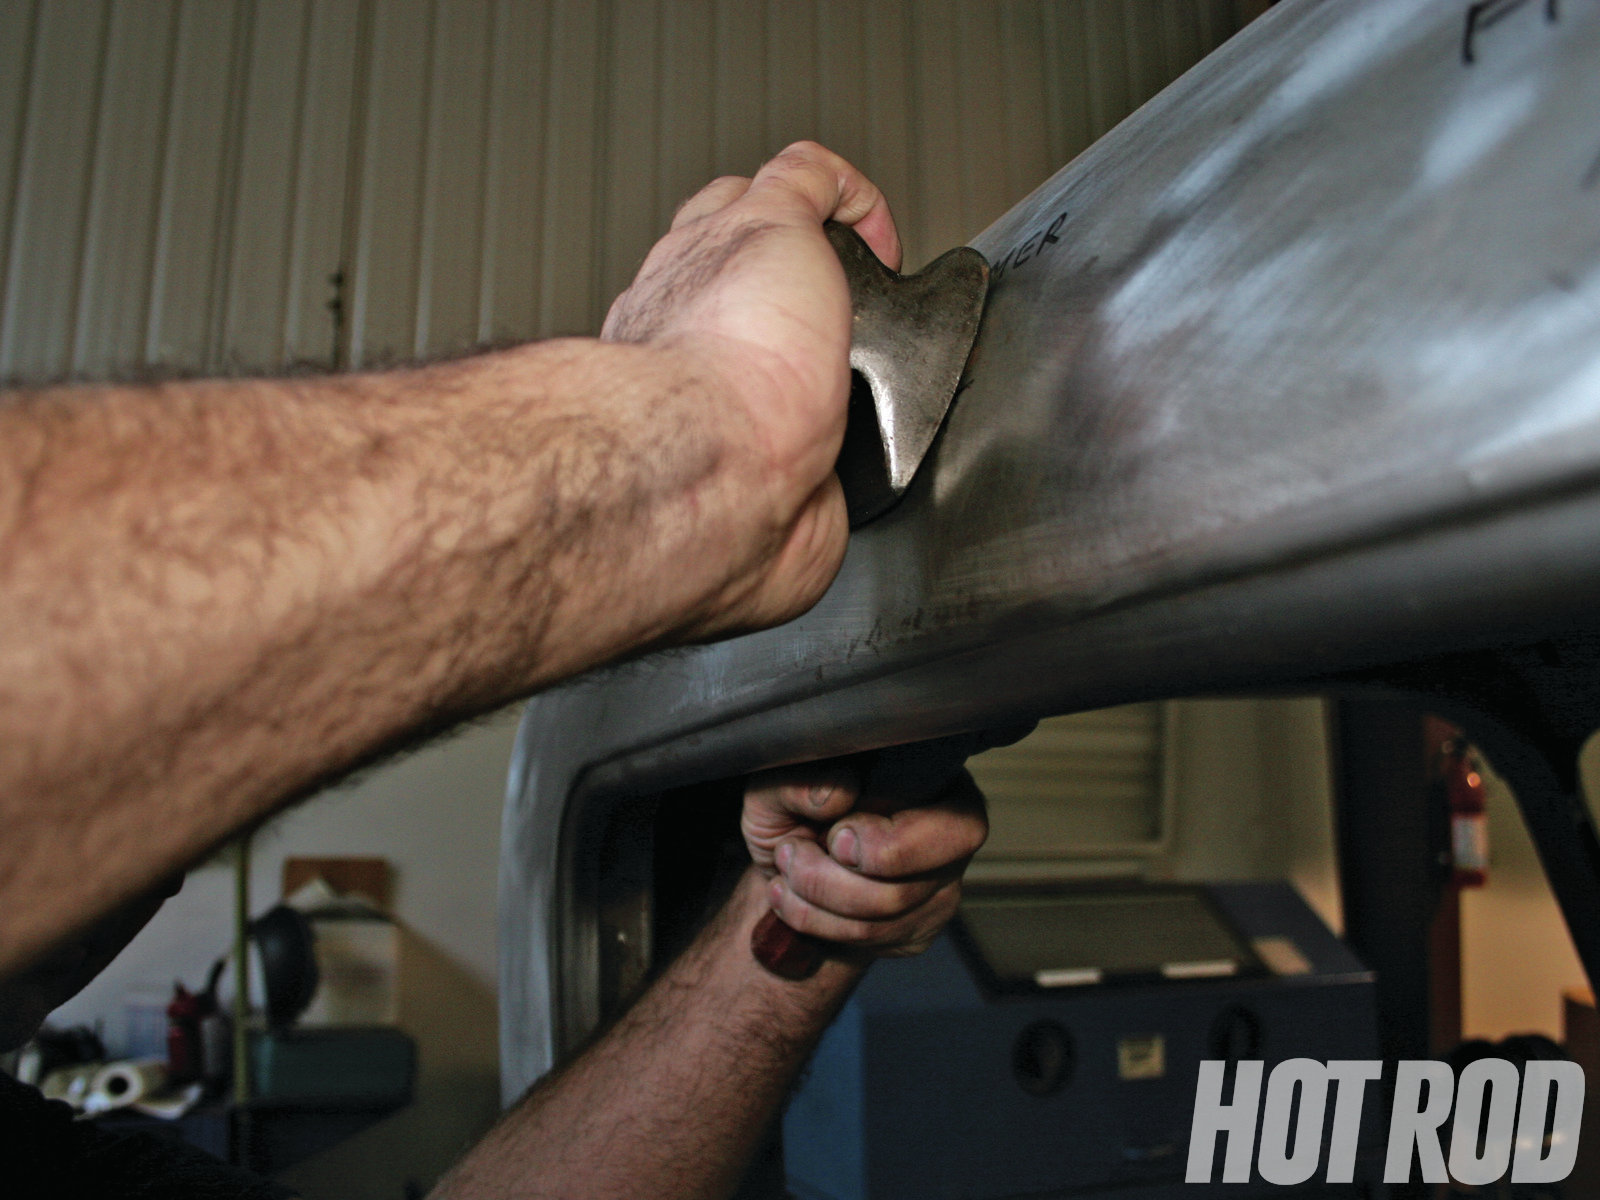 Make a nice swing with the hammer and make even contact with the panel. How you hold the dolly is important. Just 1⁄8 to 1⁄4 inch inside the dent, away from where the hammer strikes on the outside of the dent is best. This will allow easy dent removal without having to strike the panel so hard. In fact, a gentle, bouncing hammer swing is better. When the dent is about 80 percent removed, move to the slap-file method.